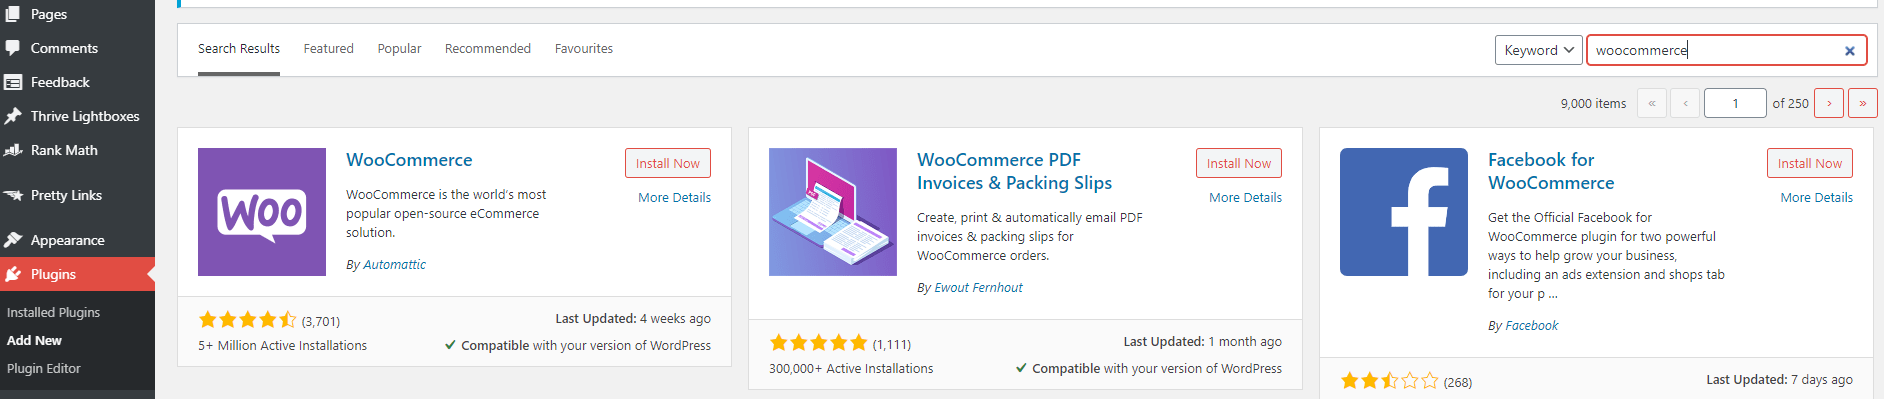 How To Install The AliDropship Woocommerce Plugin 3 How To Install The AliDropship Woocommerce Plugin